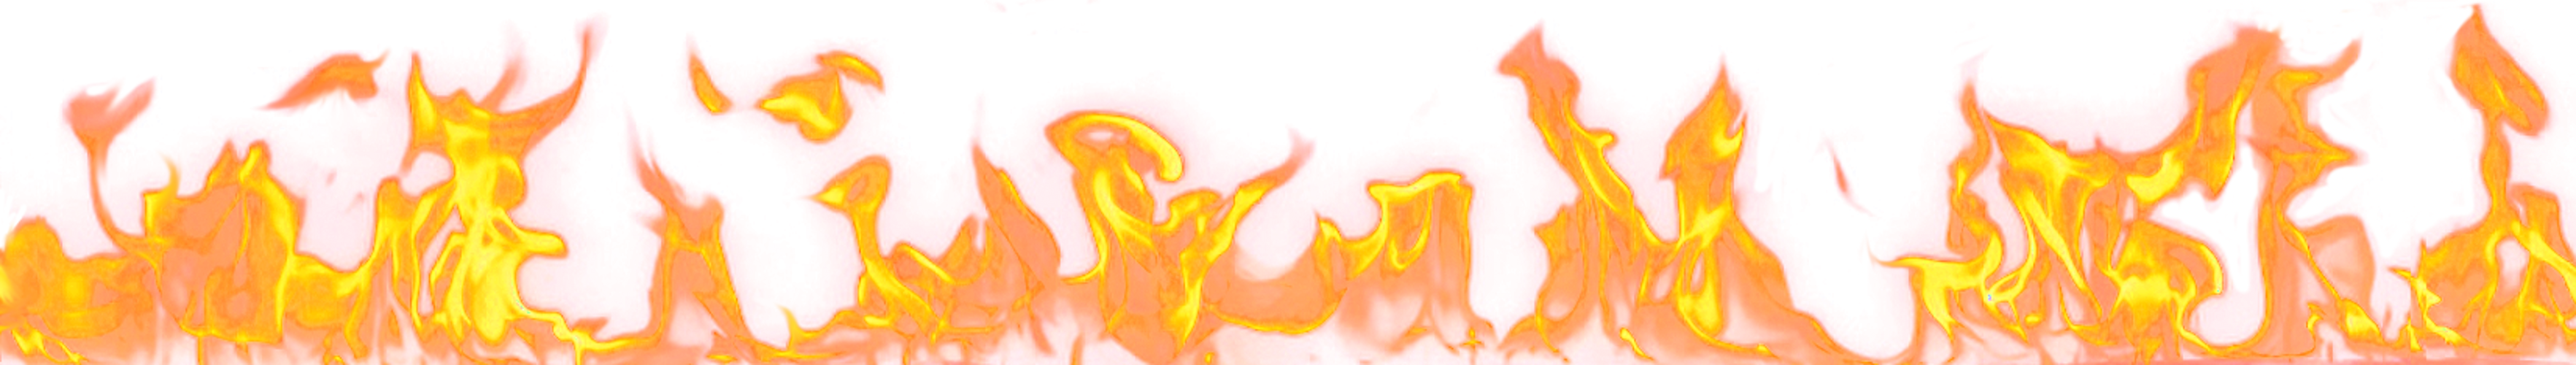 Fire Flames Clipart Photo 18 PNG Images